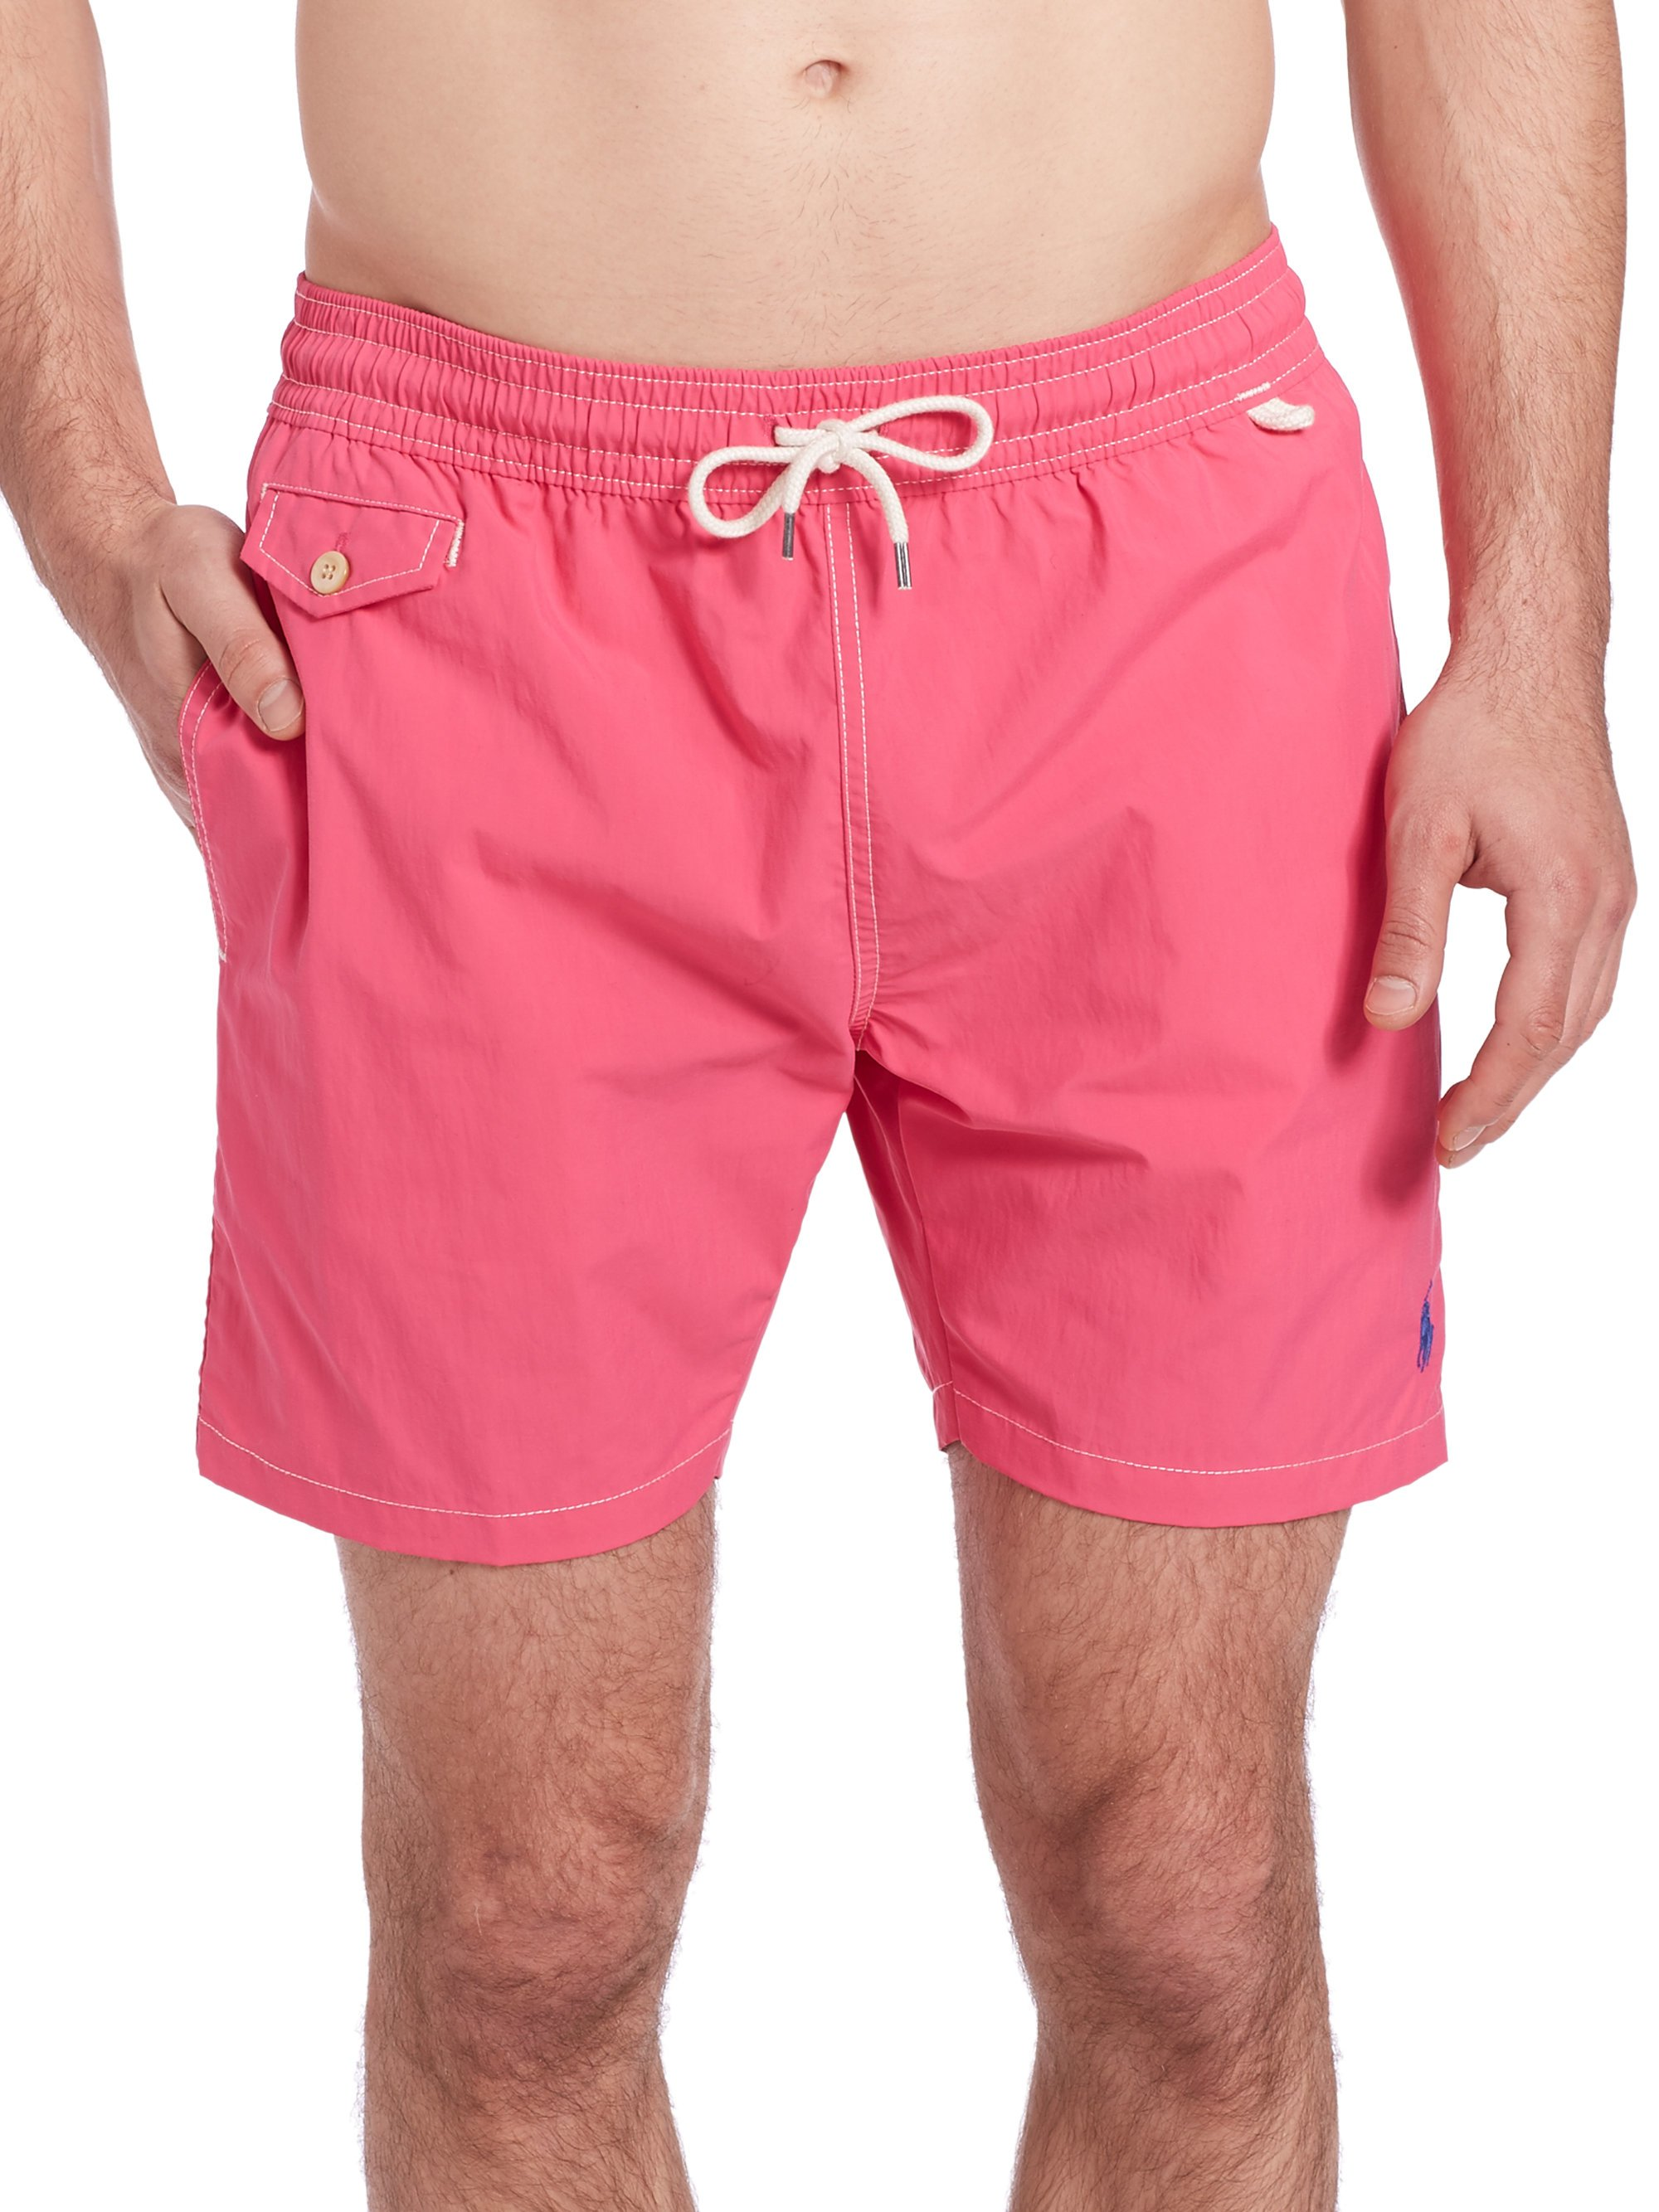 fab64177a022a Polo Ralph Lauren Traveler Swim Shorts in Pink for Men - Lyst